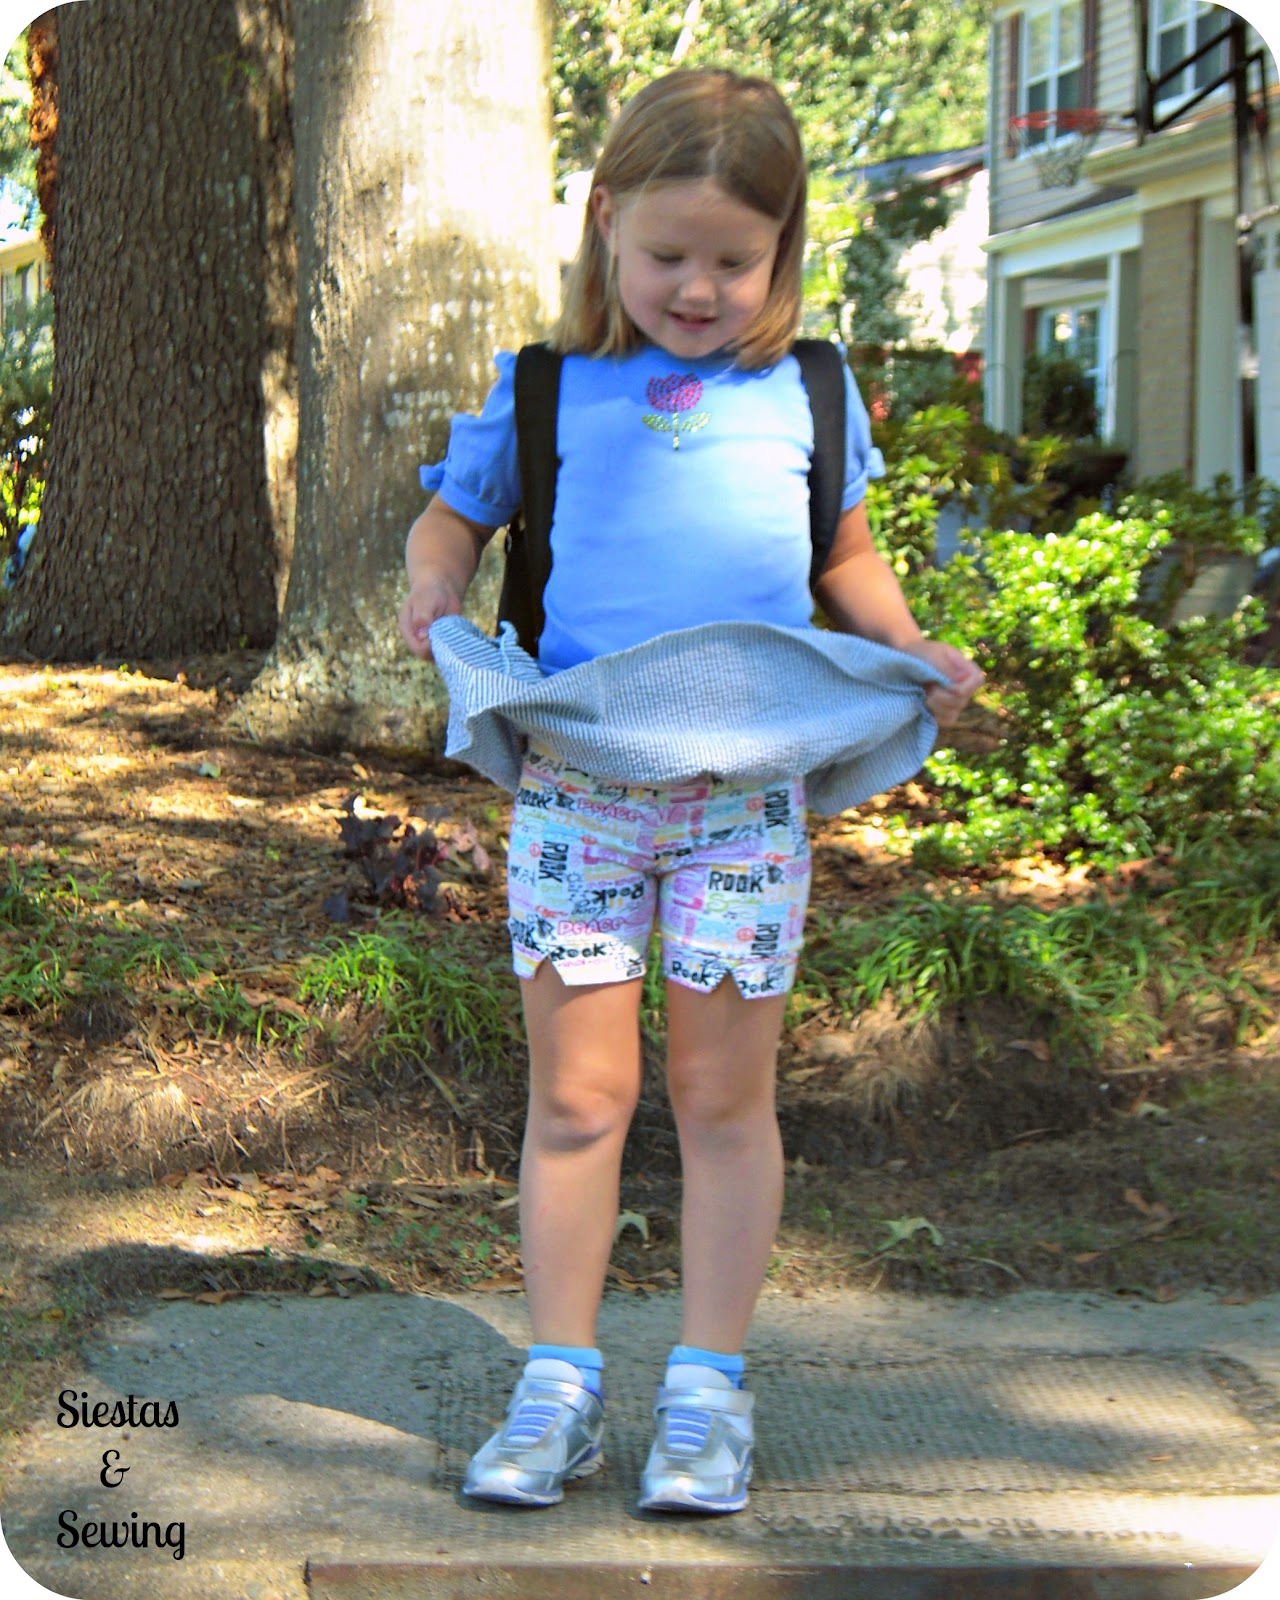 Siestas And Sewing: Shorts For Skirts